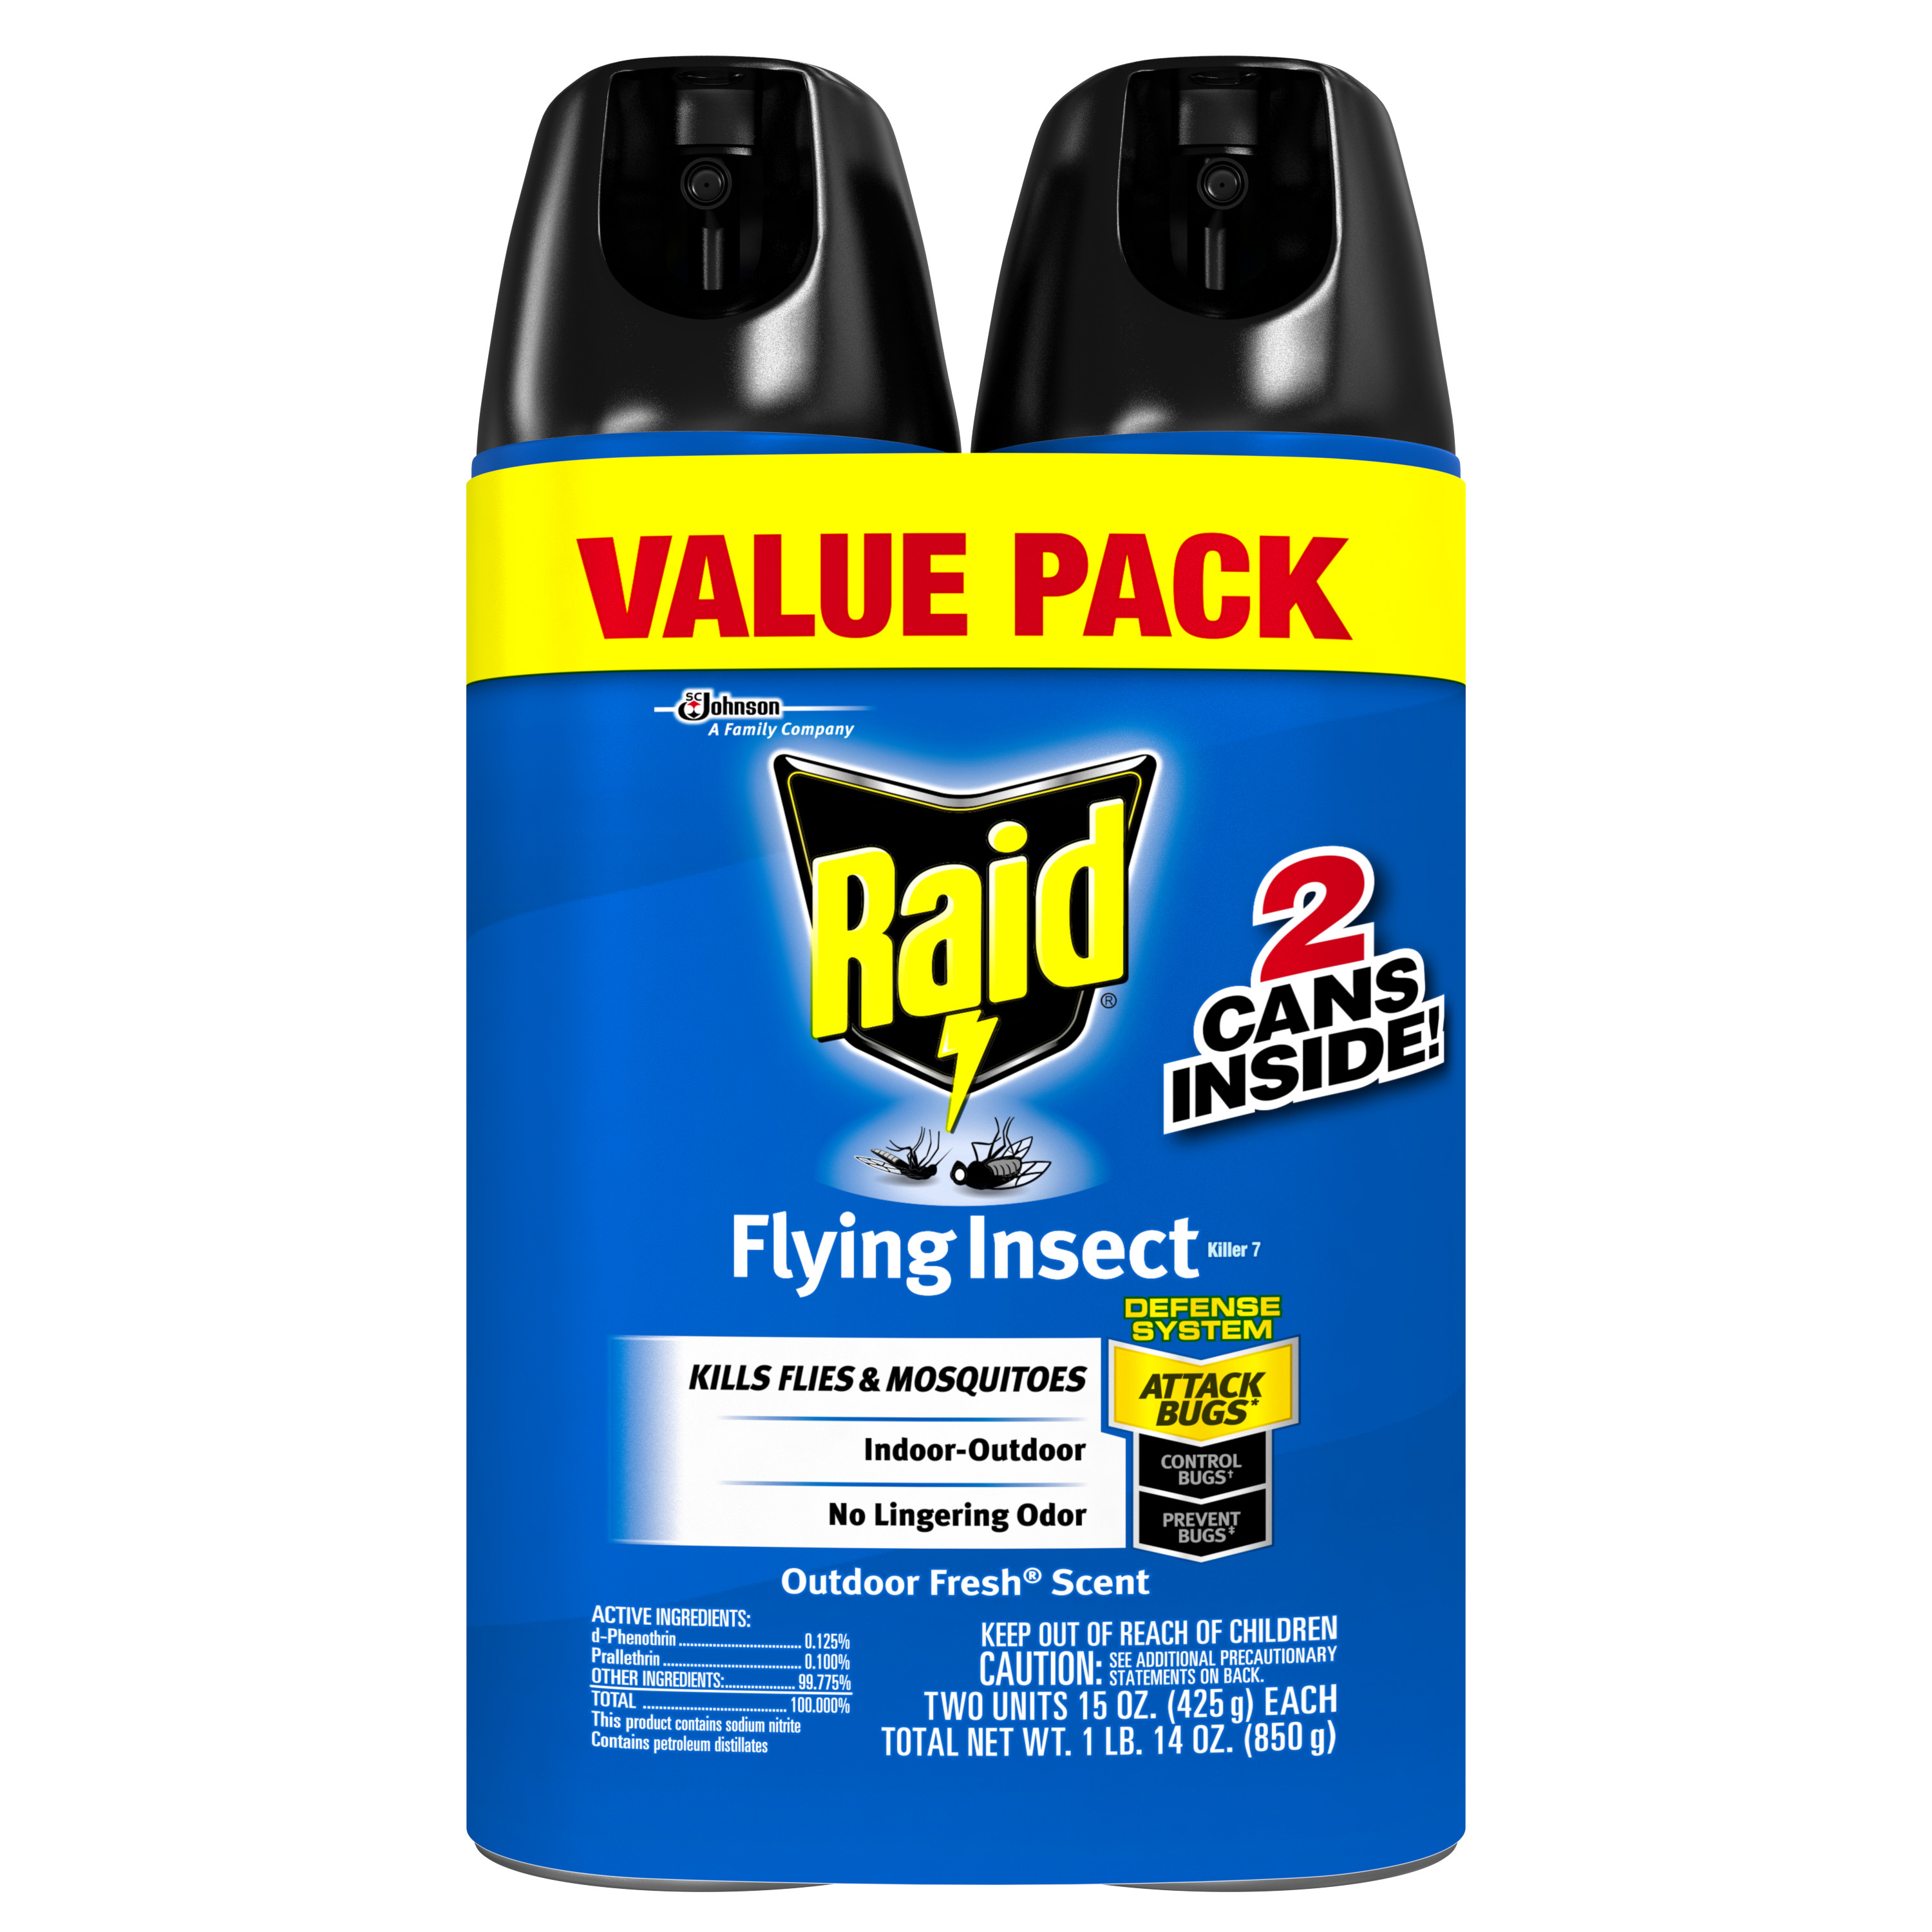 Raid Flying Insect Killer 7, 15 Ounces (2 count)